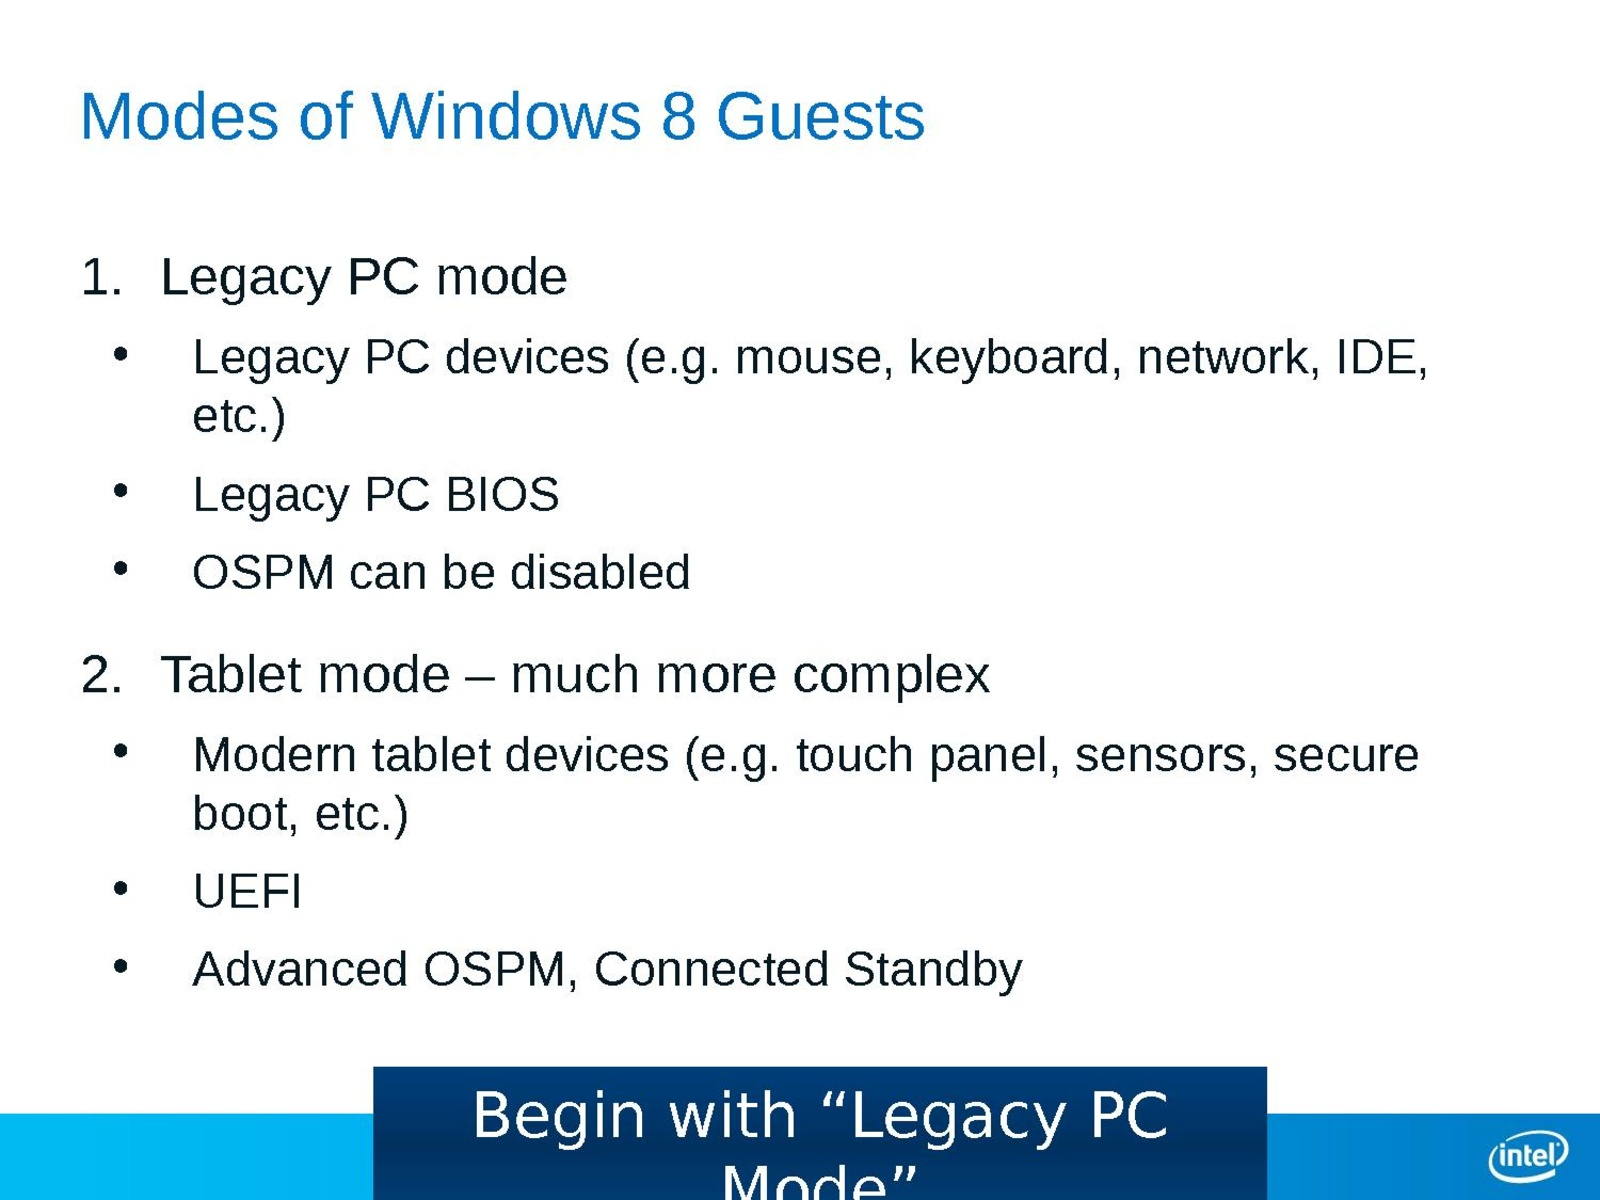 Index of /images/thumb/a/a9/Kvm-forum-2013-Windows8-on